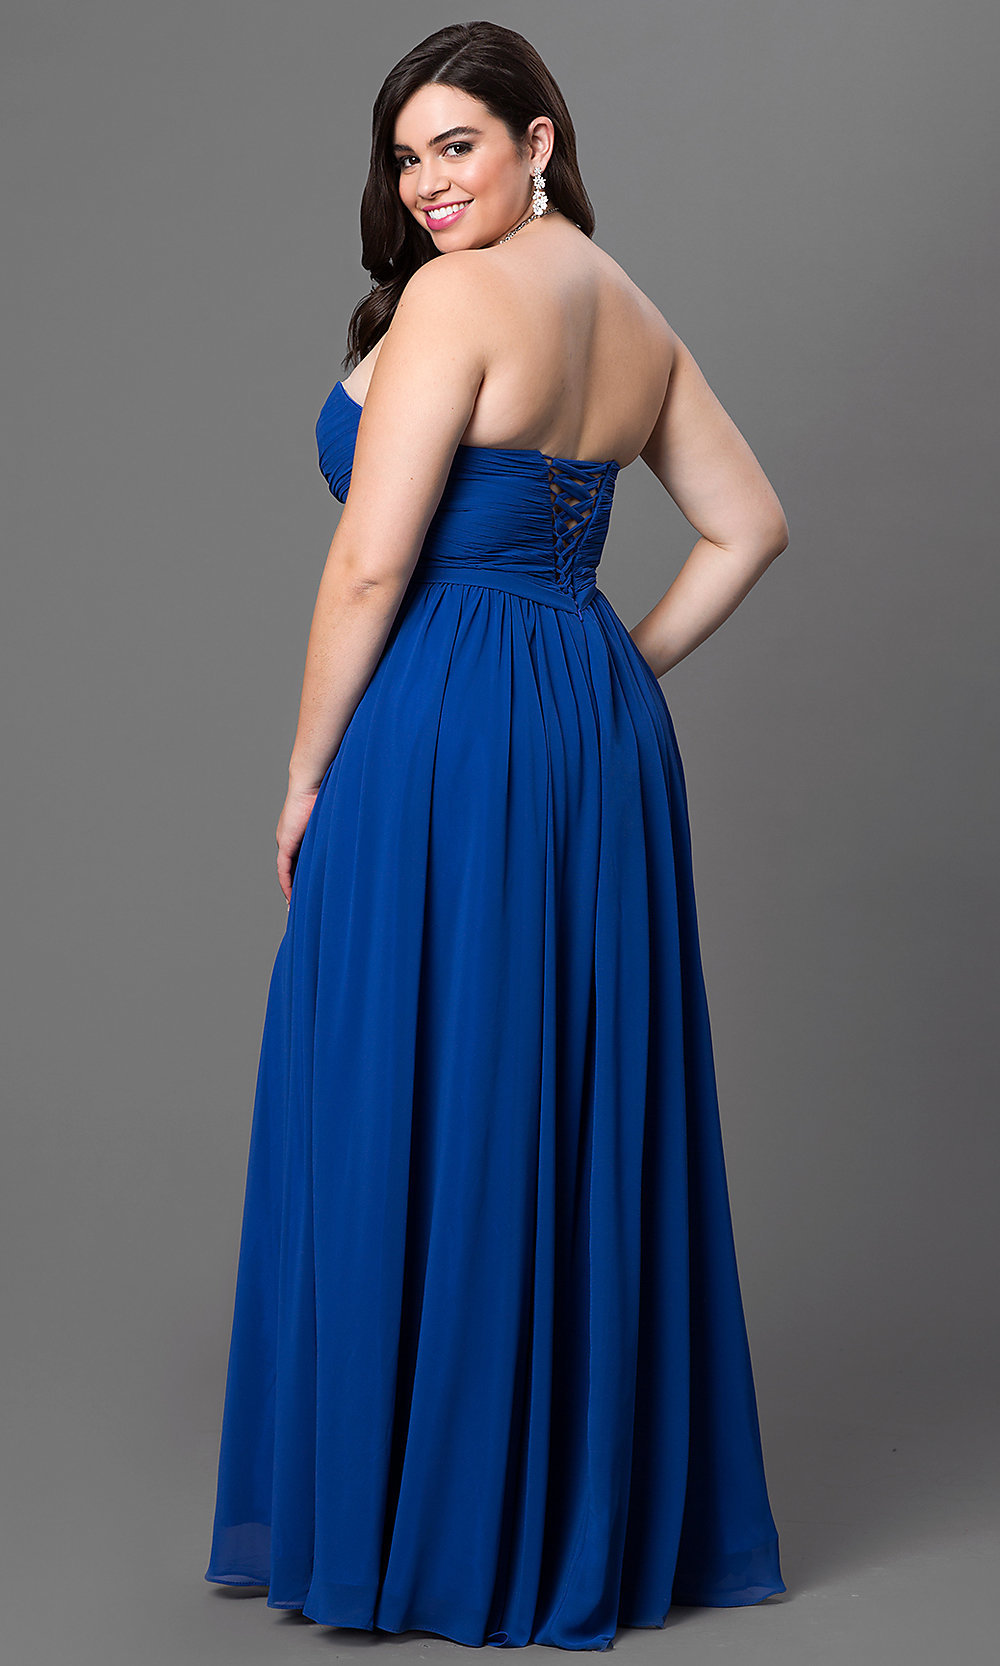 Plus-Size Strapless Corset Prom Dress